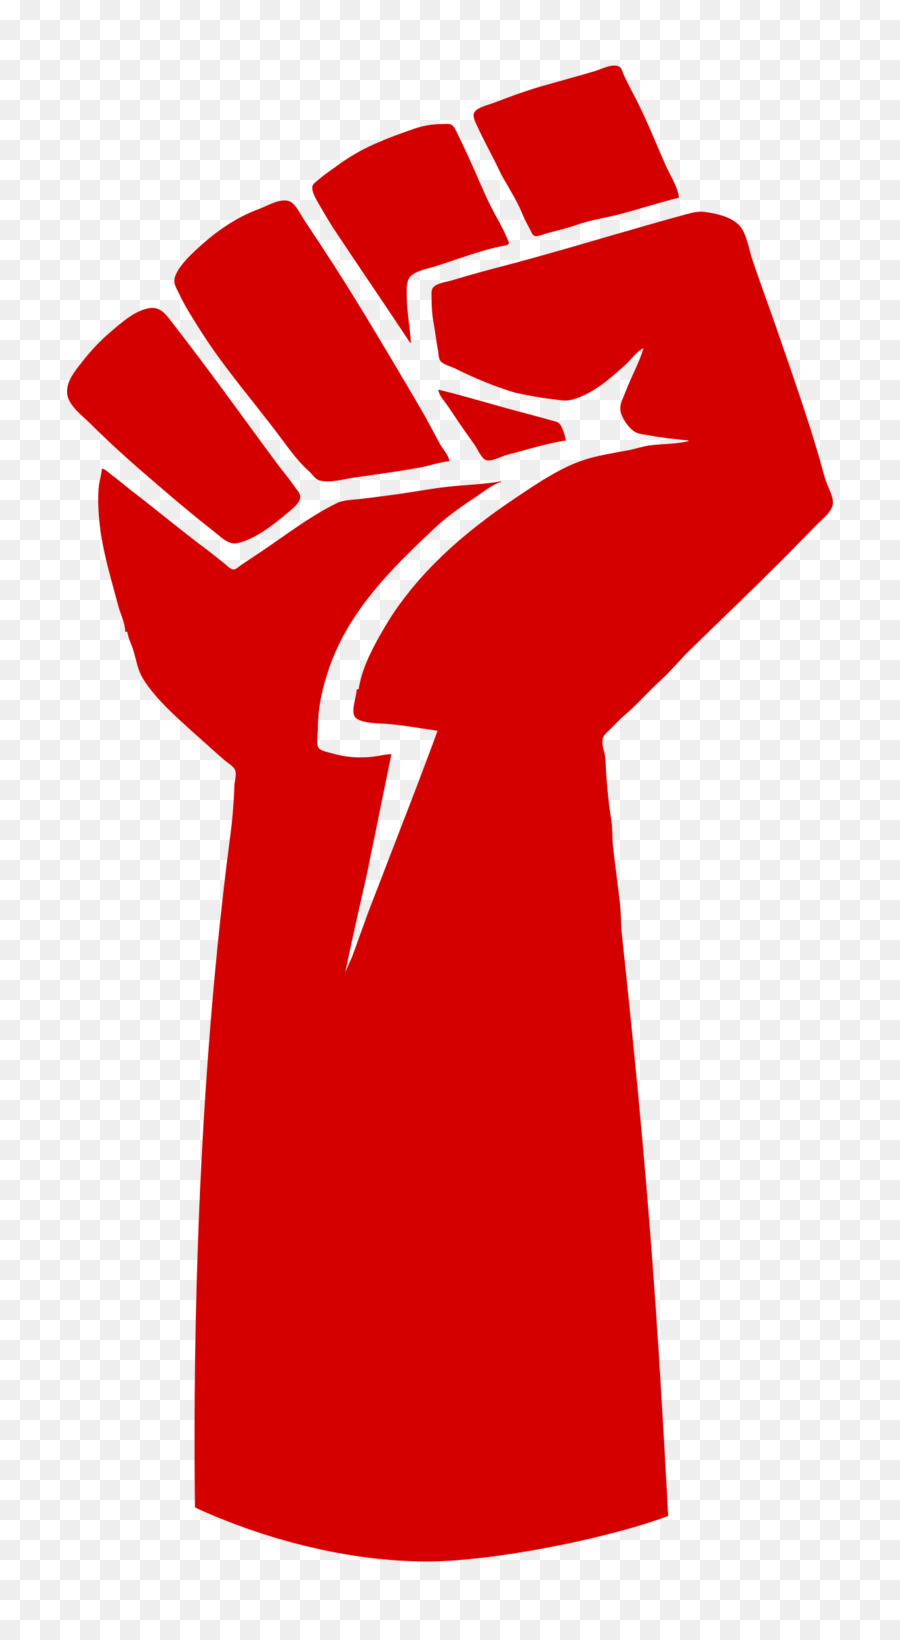 Fist clipart red. Black power clothing dress